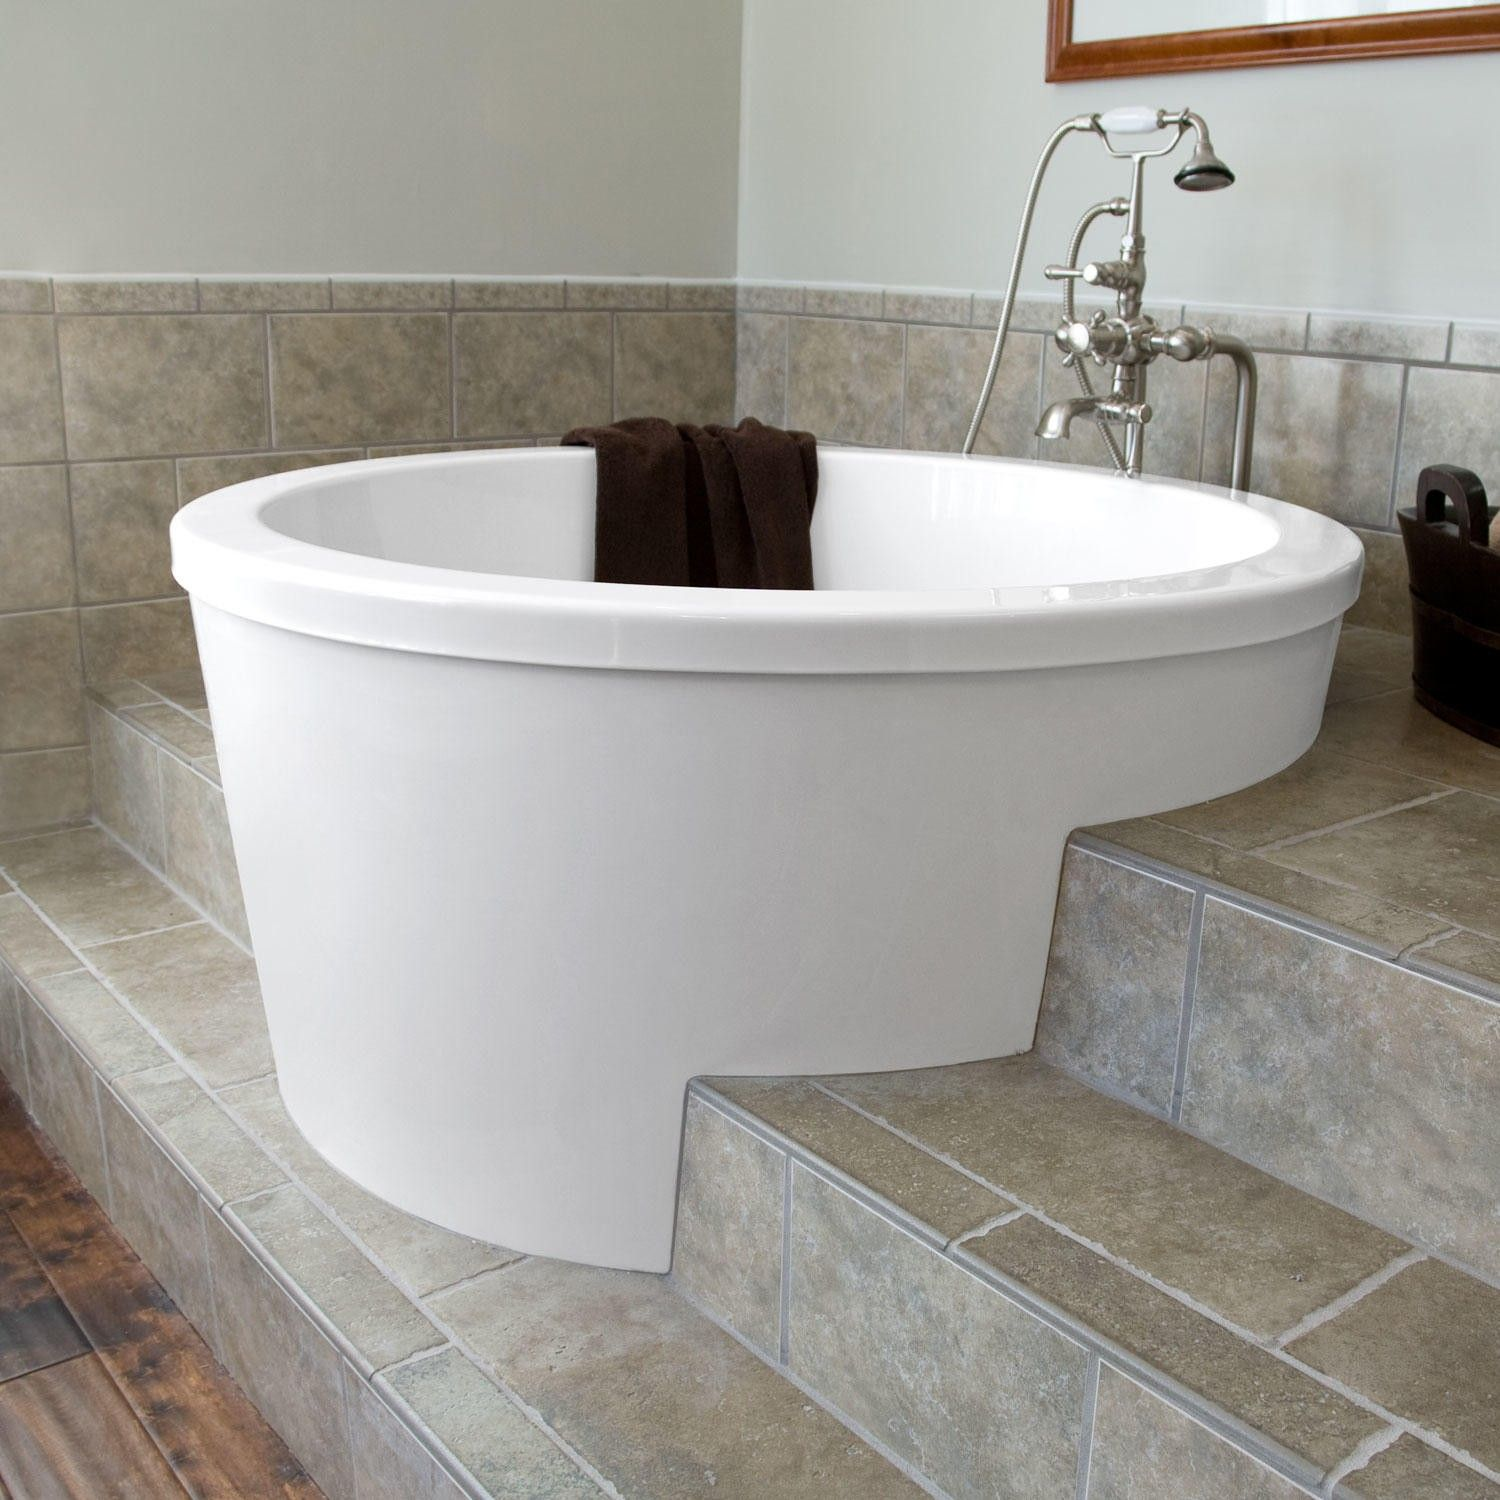 4 Things to Know about Japanese Soaking Tub - http://www ...